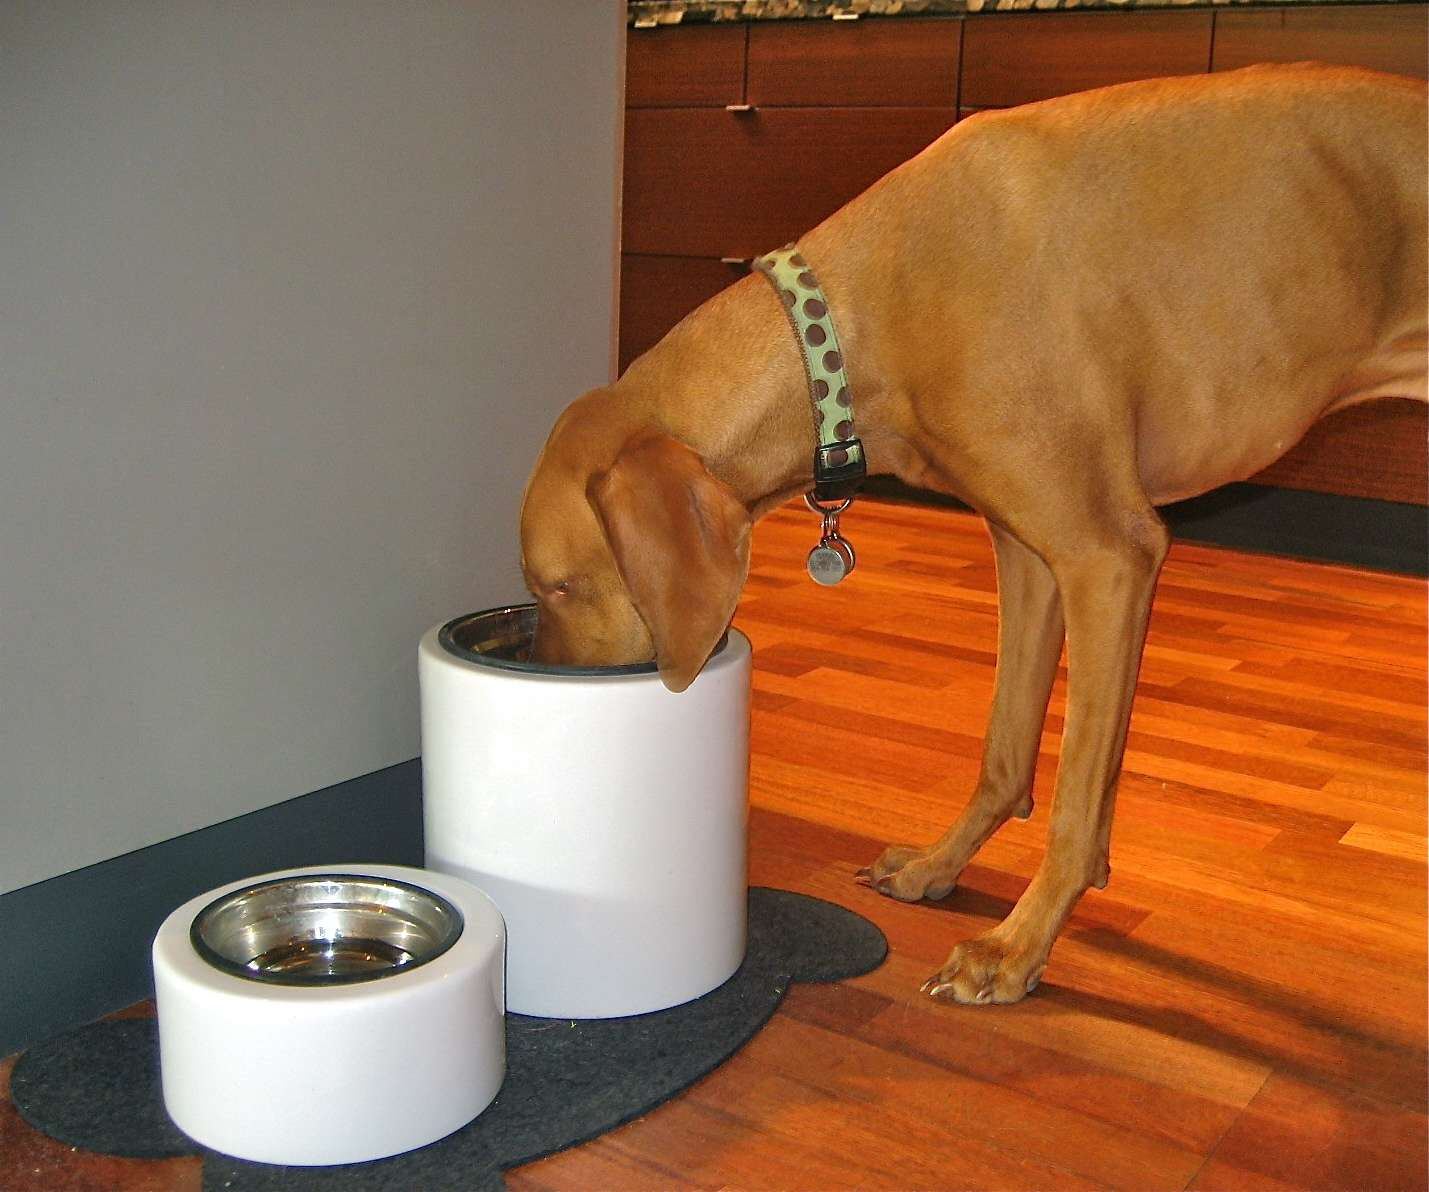 Elevated Dog Bowls with Storage | Single Bowl Raised Dog Feeder | Elevated Dog Bowls